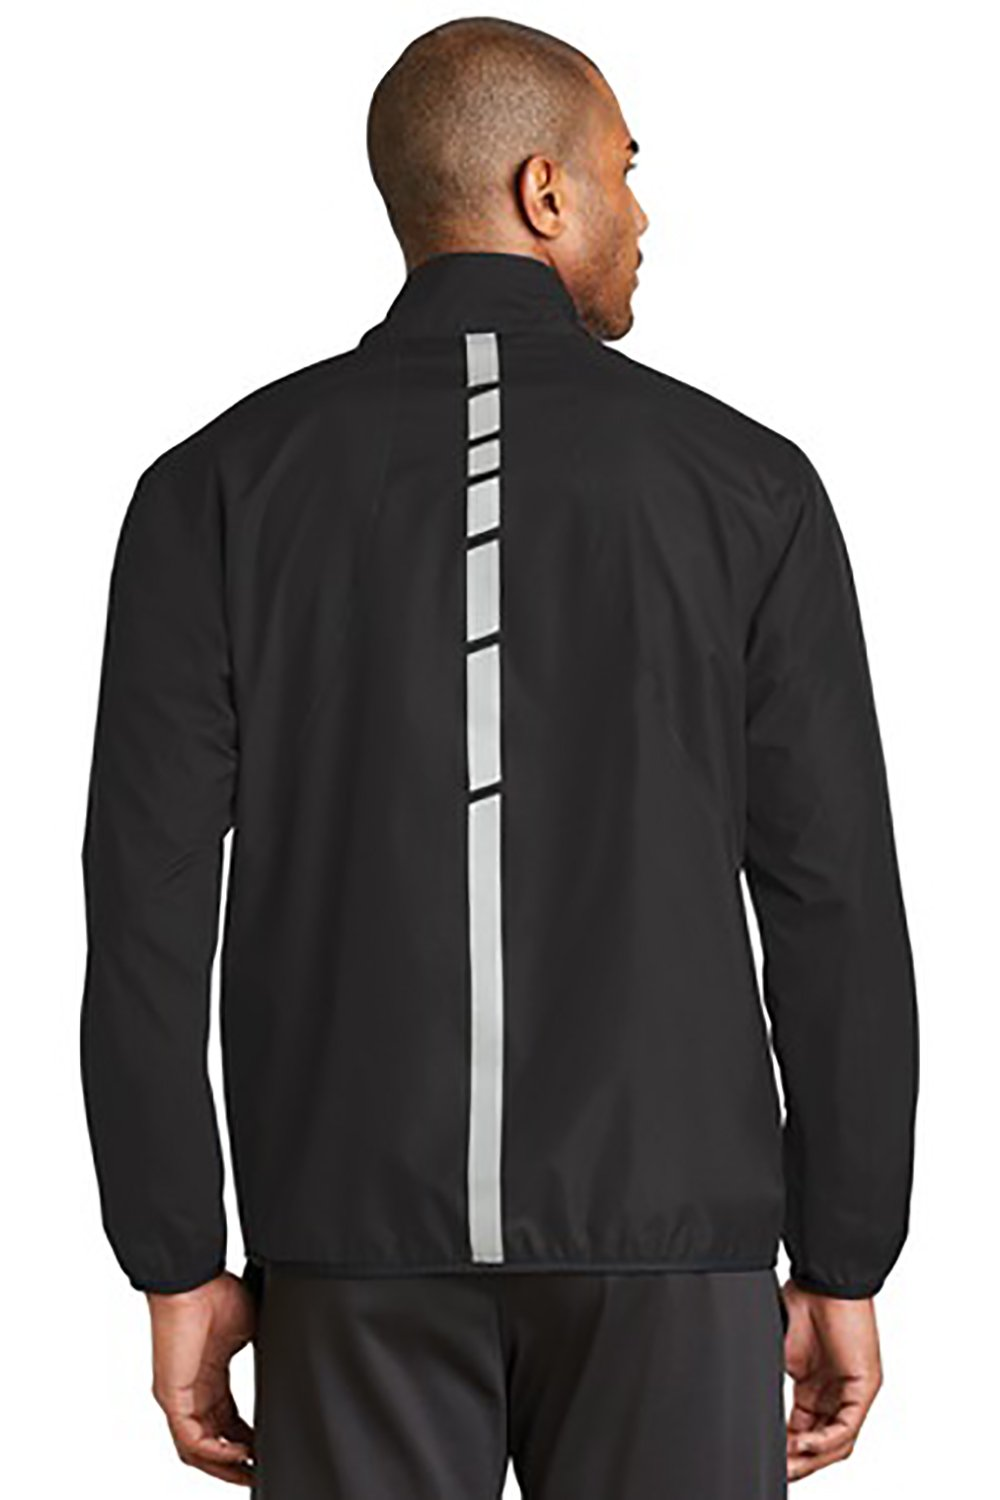 AACR Philadelphia Marathon: 'Emb. Marathon' Men's Reflective Lightweight Full Zip Jacket - Black - by Port Authority